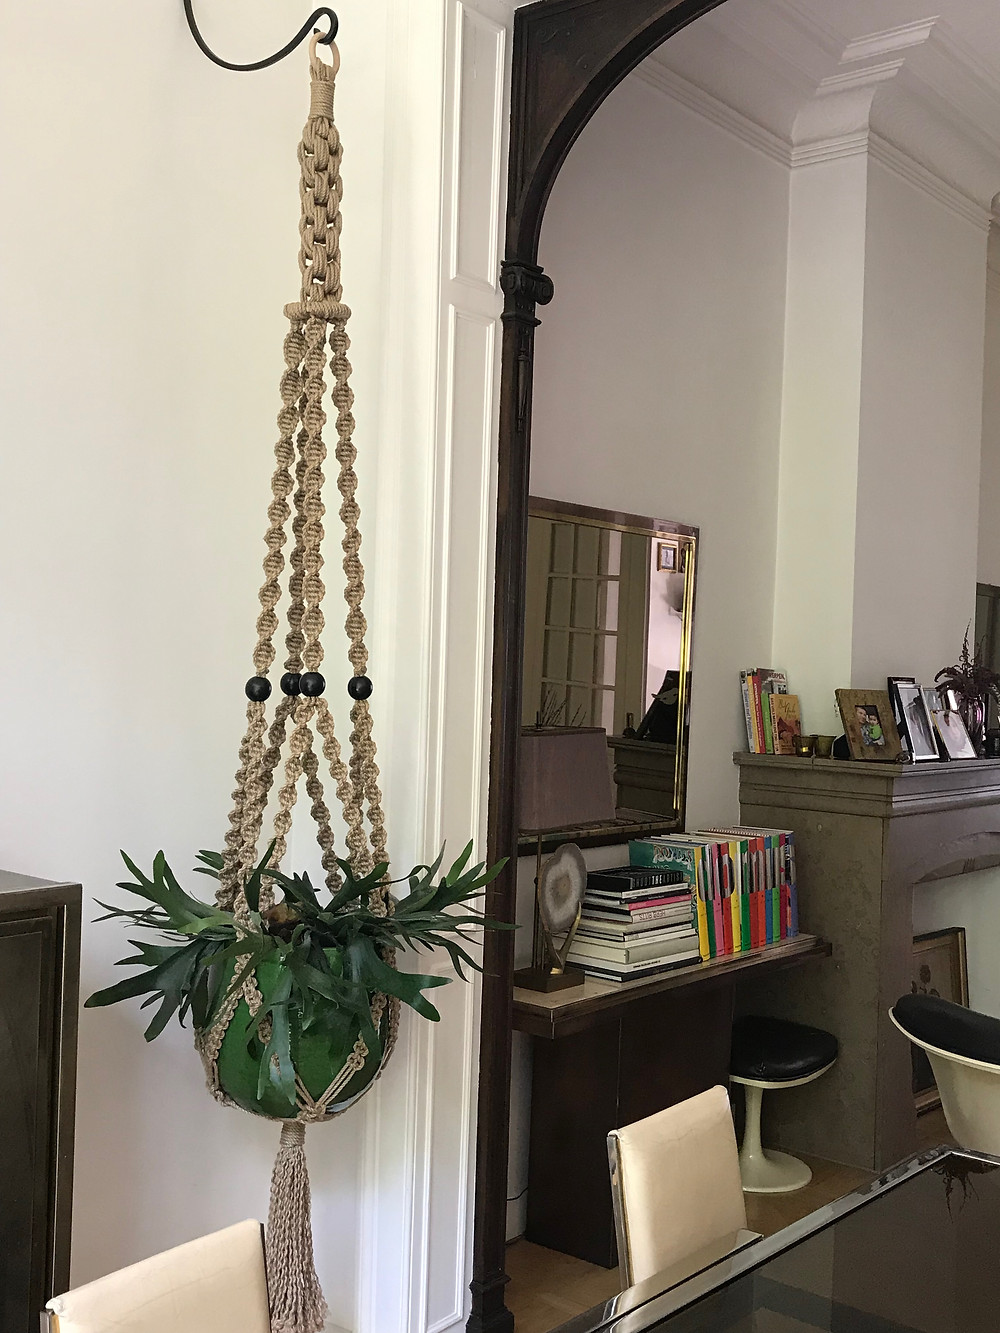 Macramé plant hanger in 6mm natural jute. ca. 3m high. With a Staghorn Fern plant